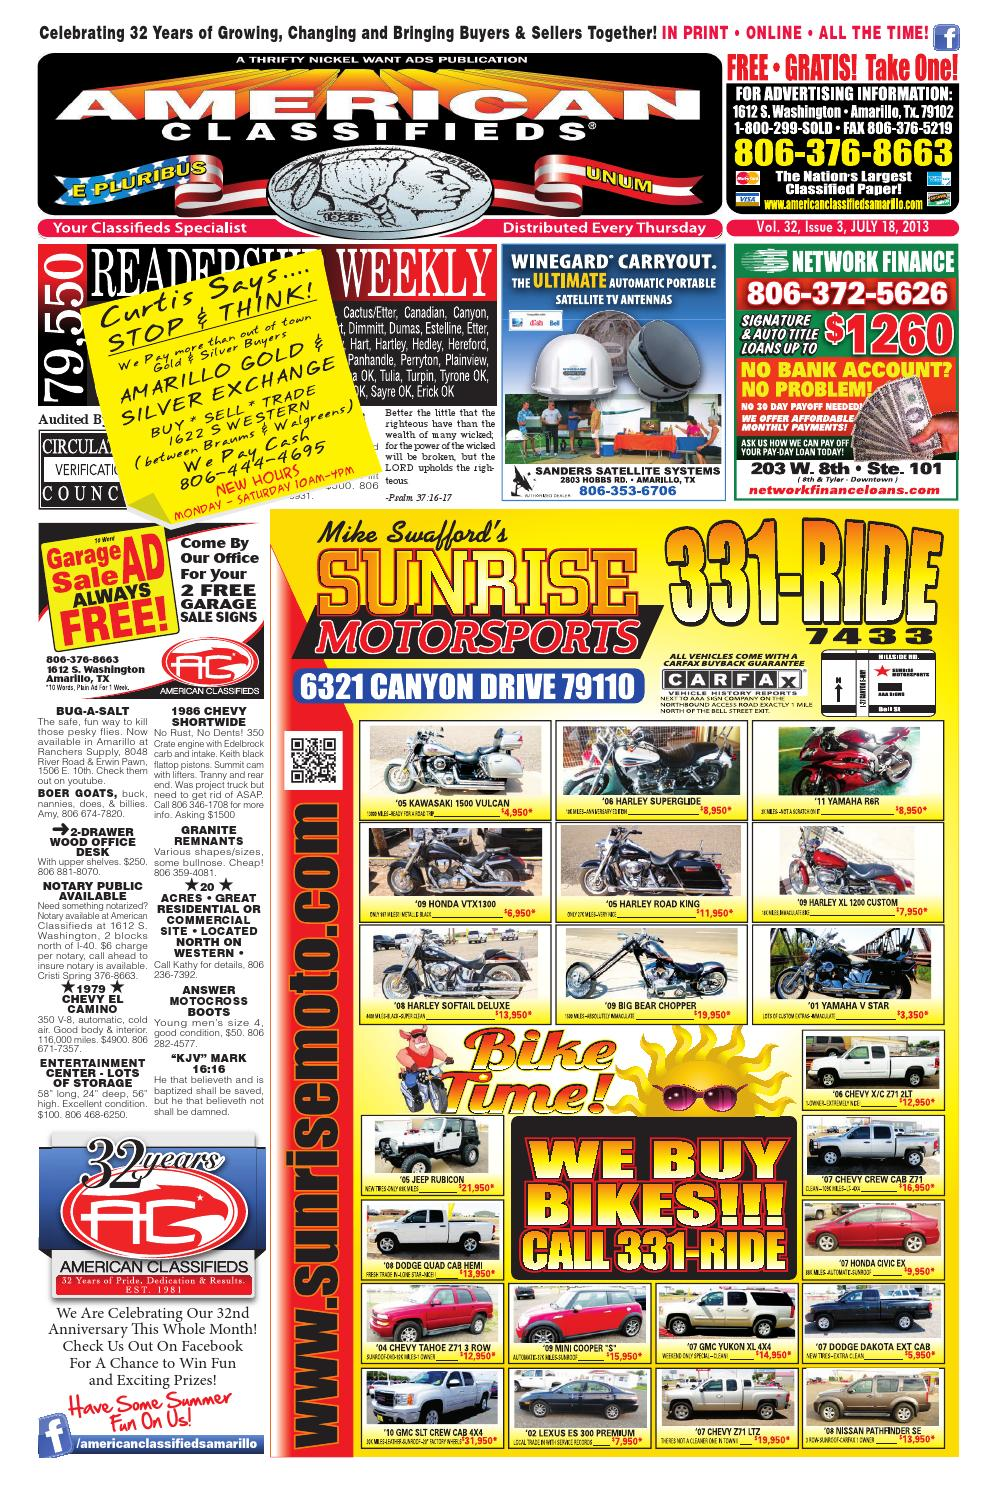 American classifieds amarillo tx july 18 2013 by american classifieds issuu